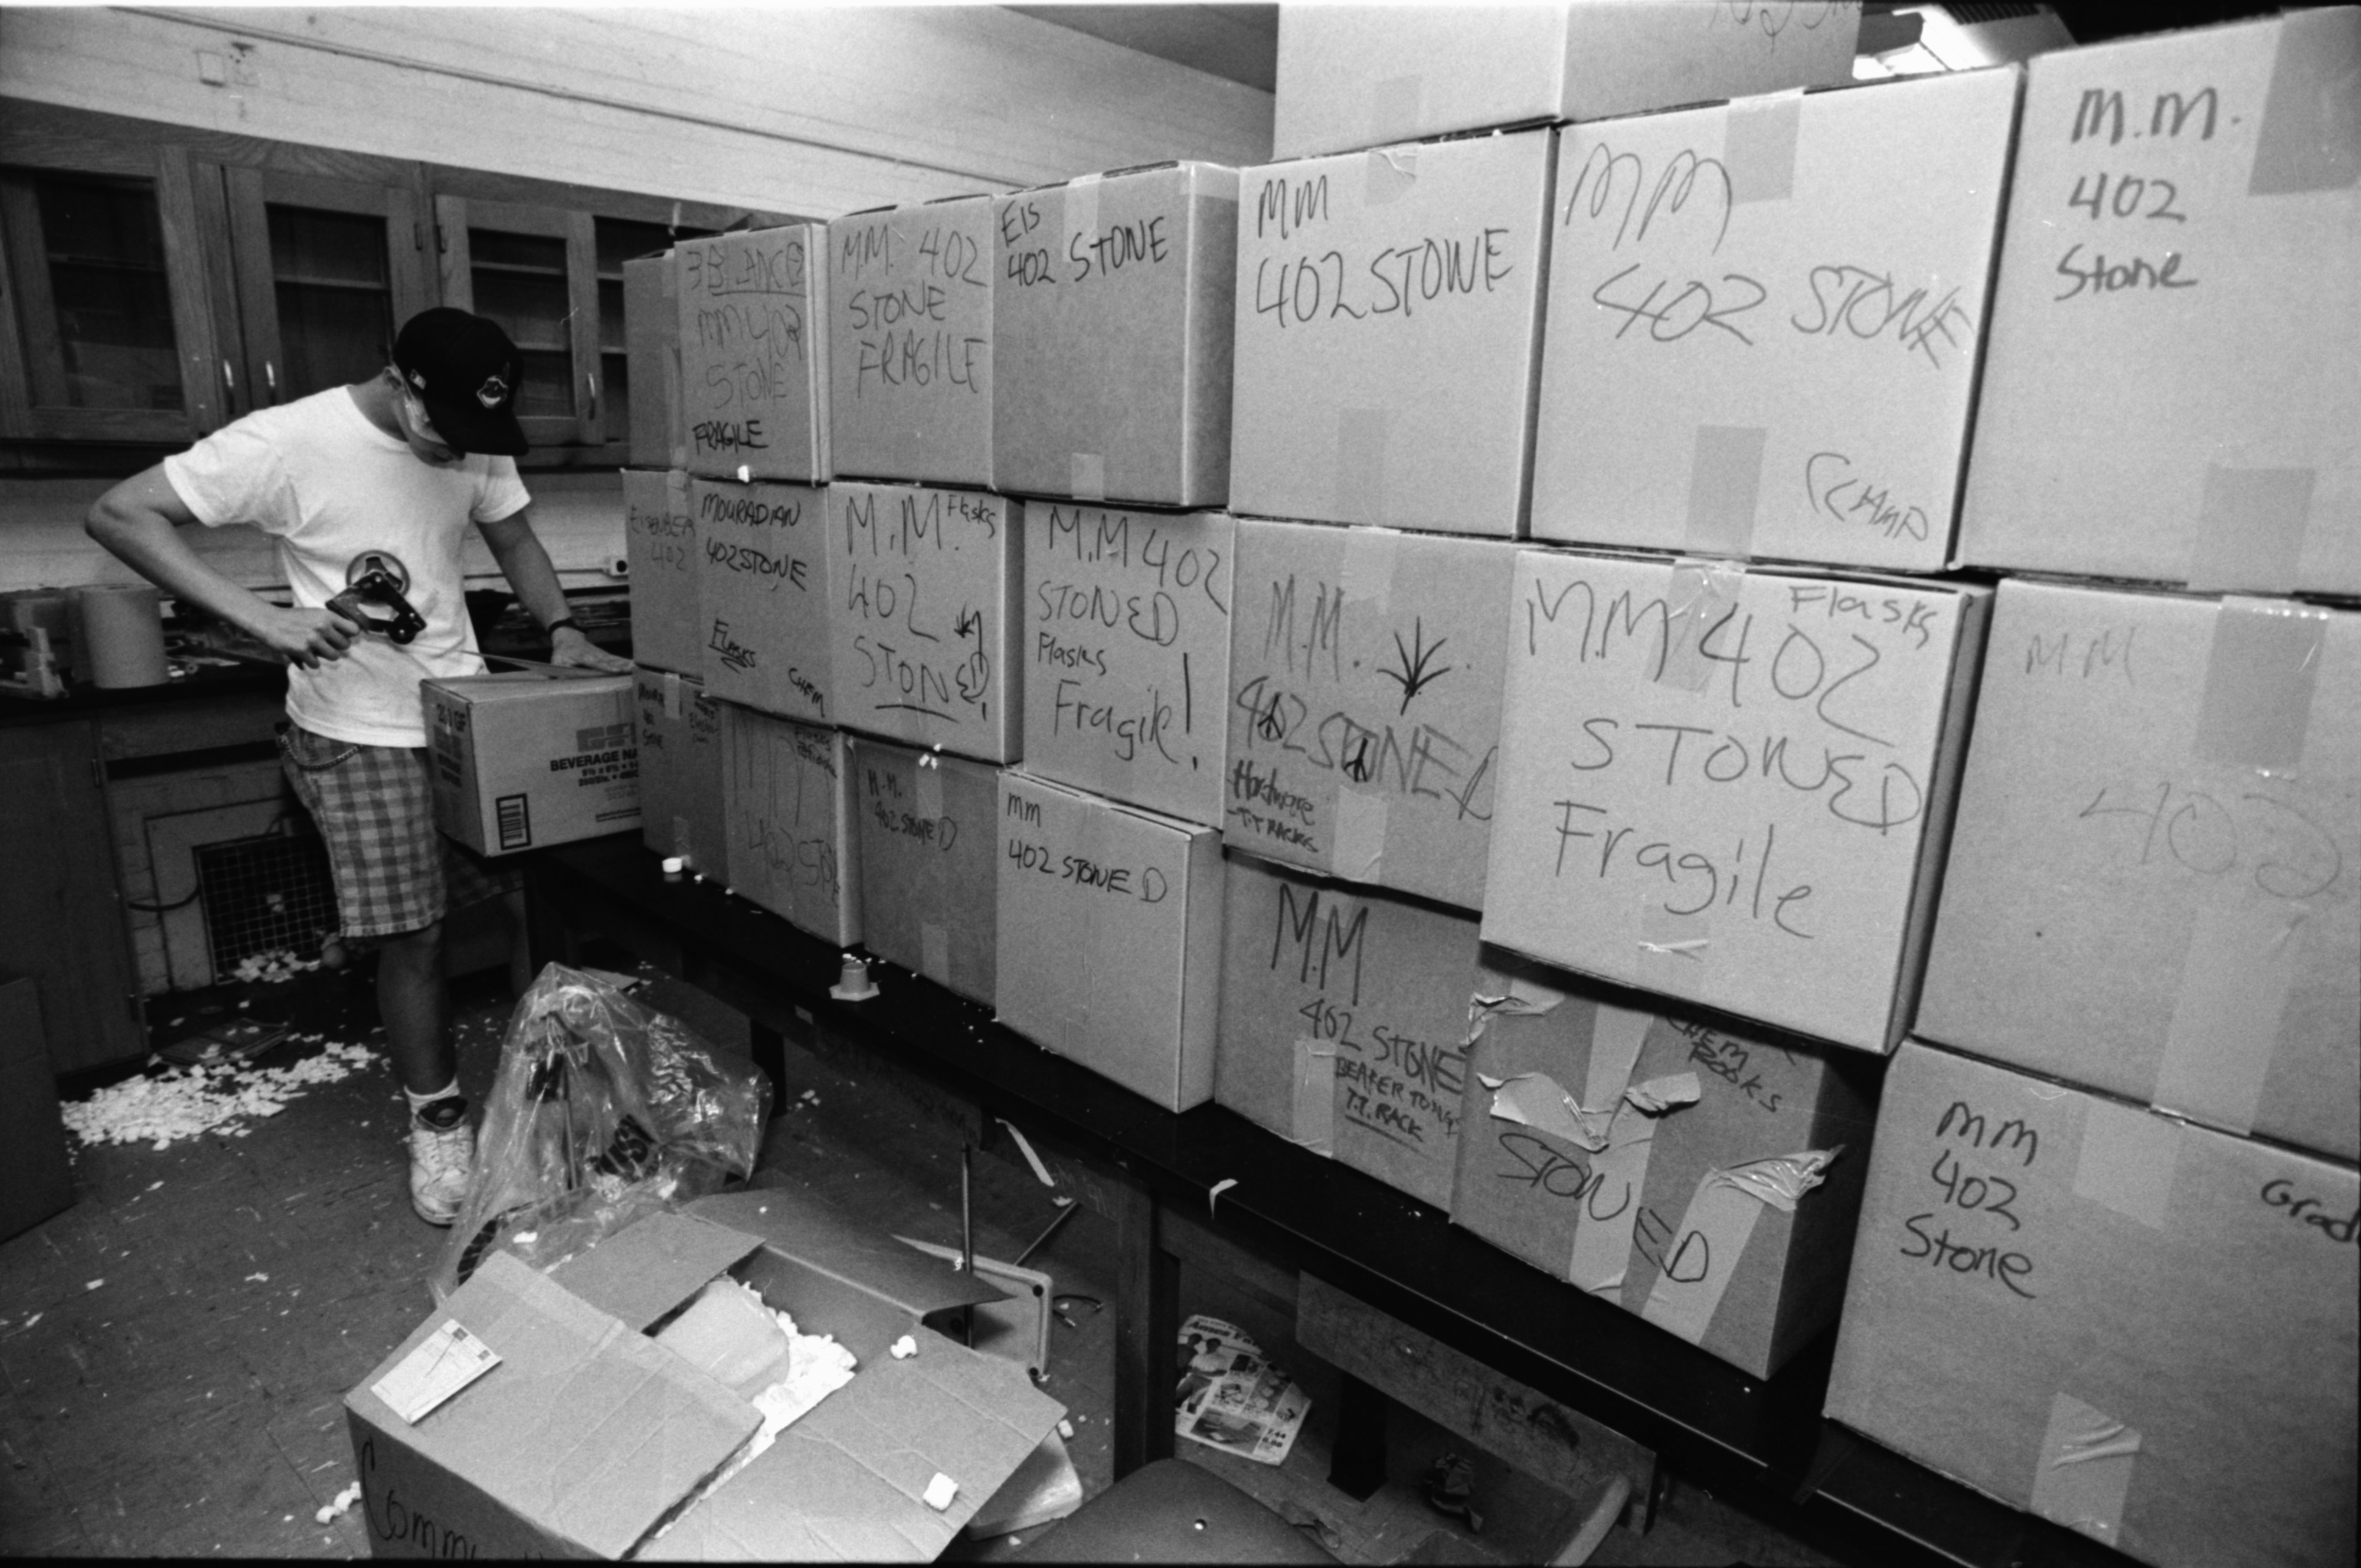 Aaron Almashy Tapes Boxes to Move to Stone School During Community High Renovations, June 1991 image